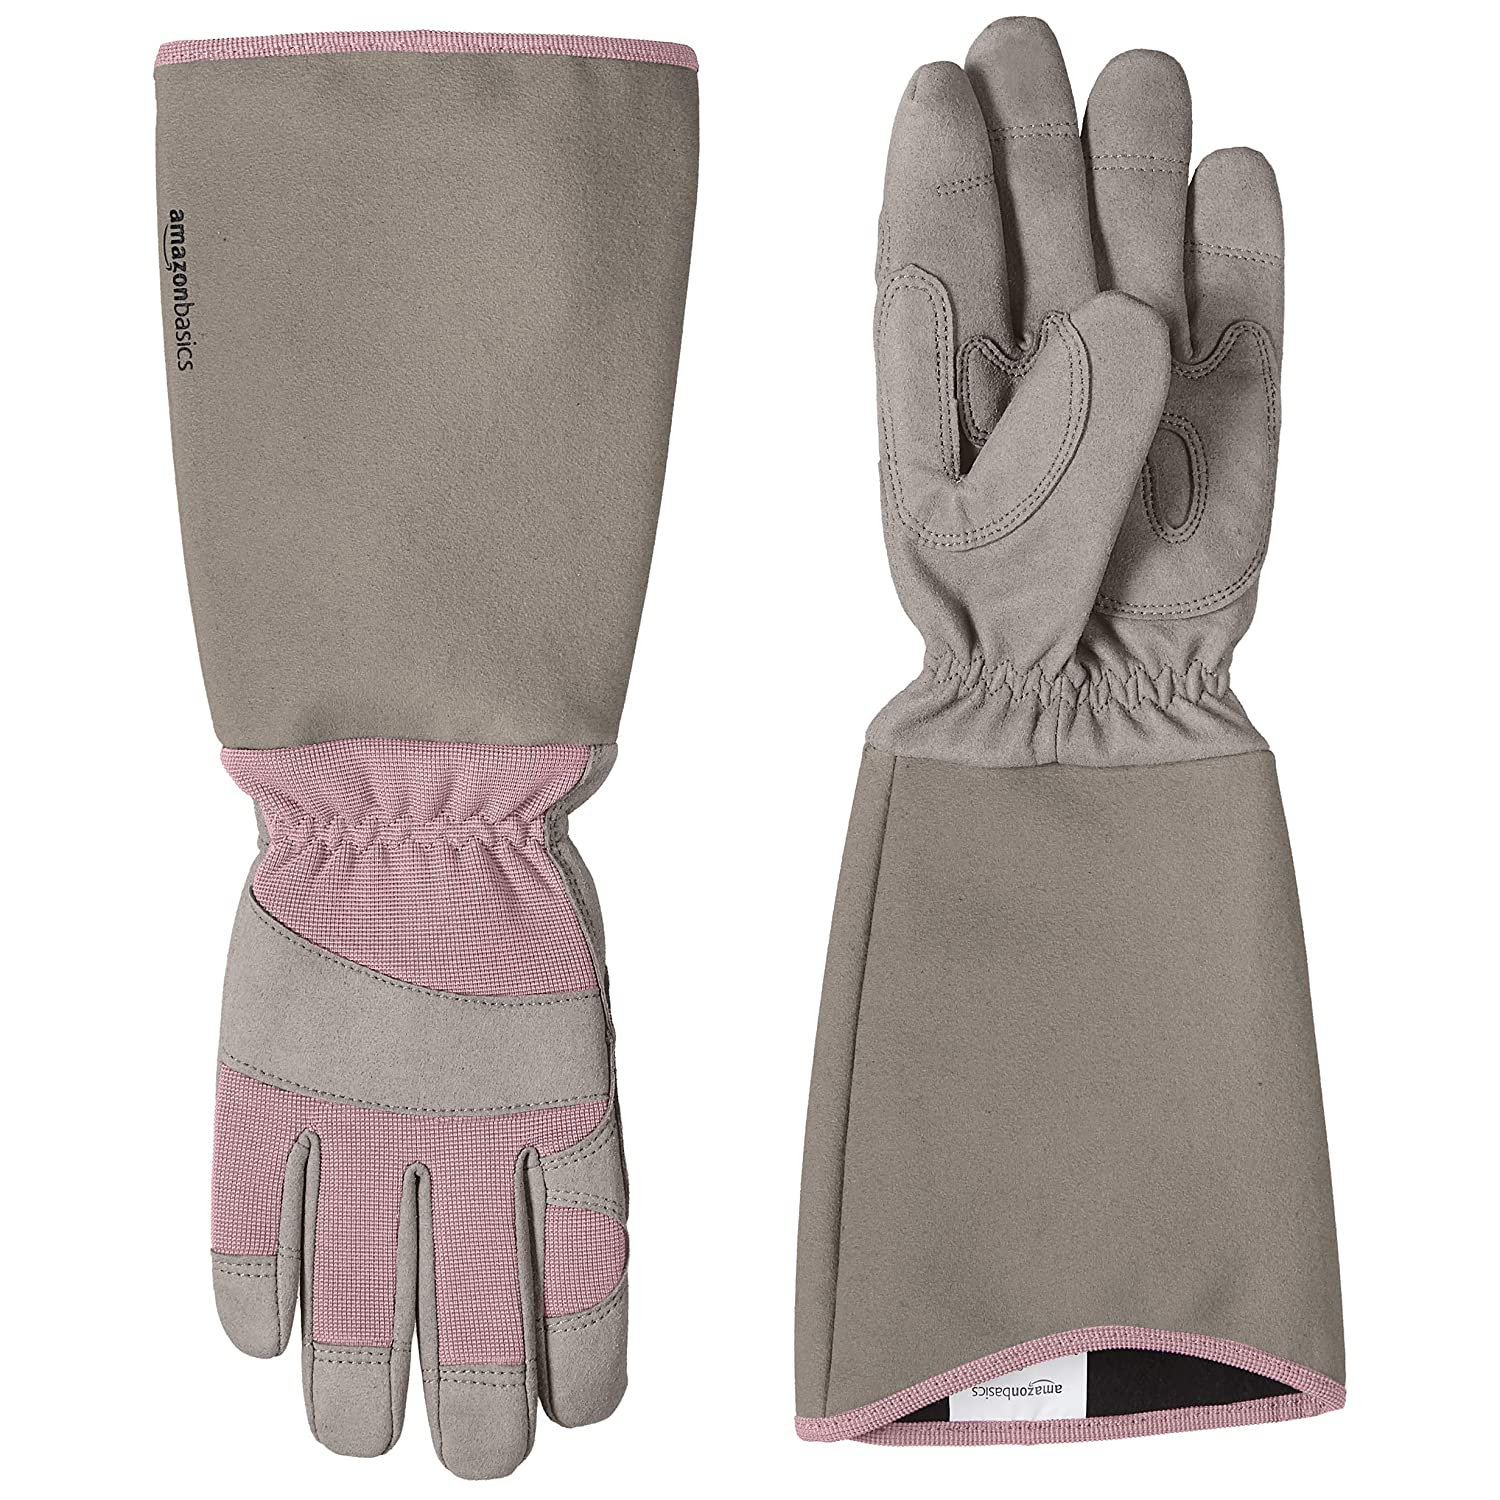 AmazonBasics Rose Pruning Thorn Proof Gardening Gloves with Forearm Protection - Pink, XL